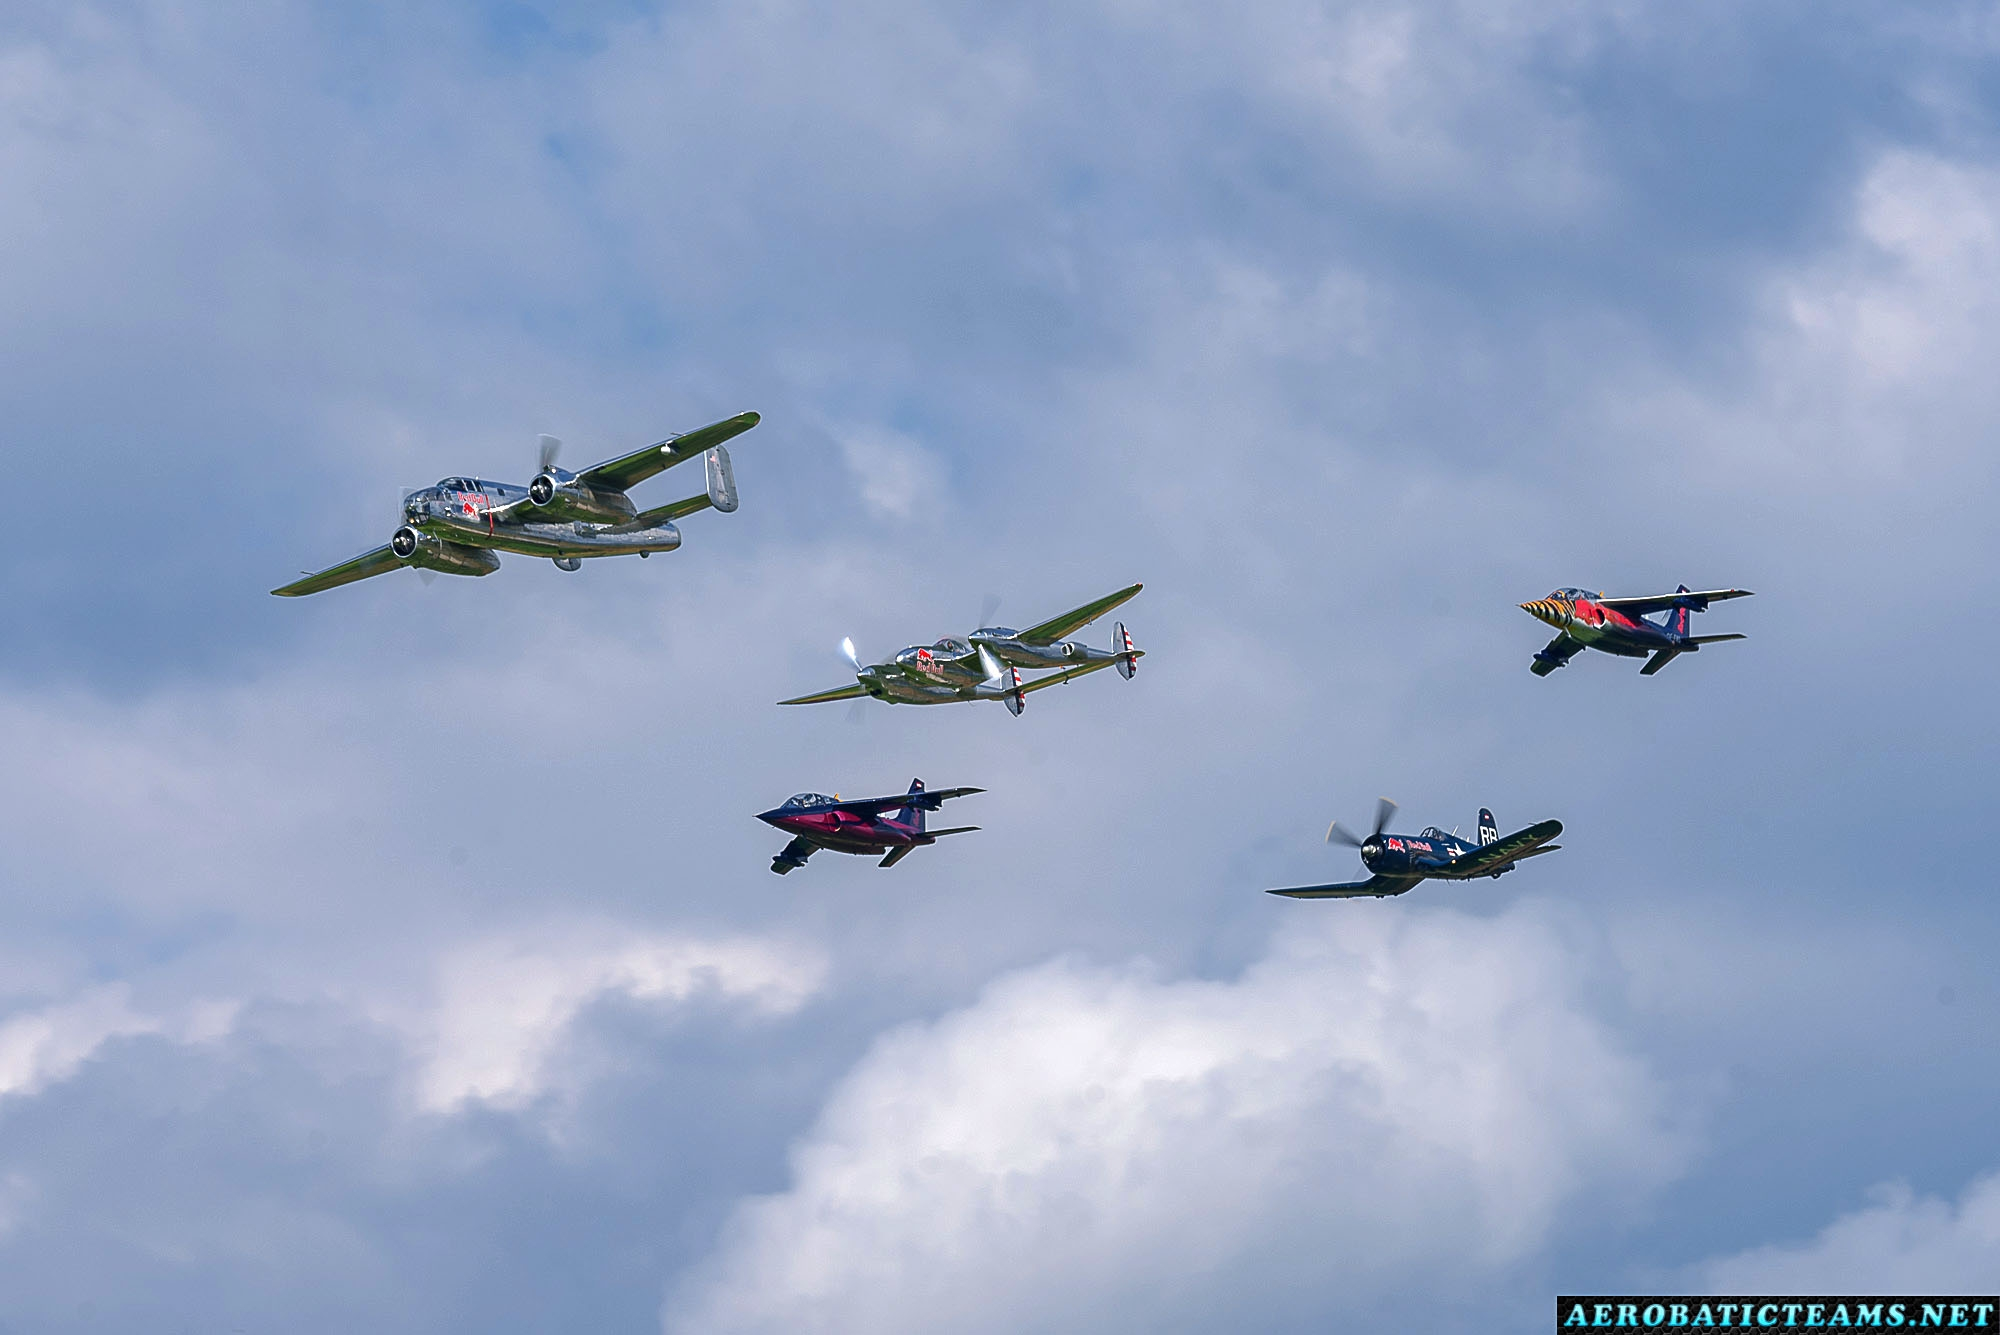 Red Bull formation - B-25 Mitchell, P-38 Lightning, F4U-4 Corsair and Alpha Jets